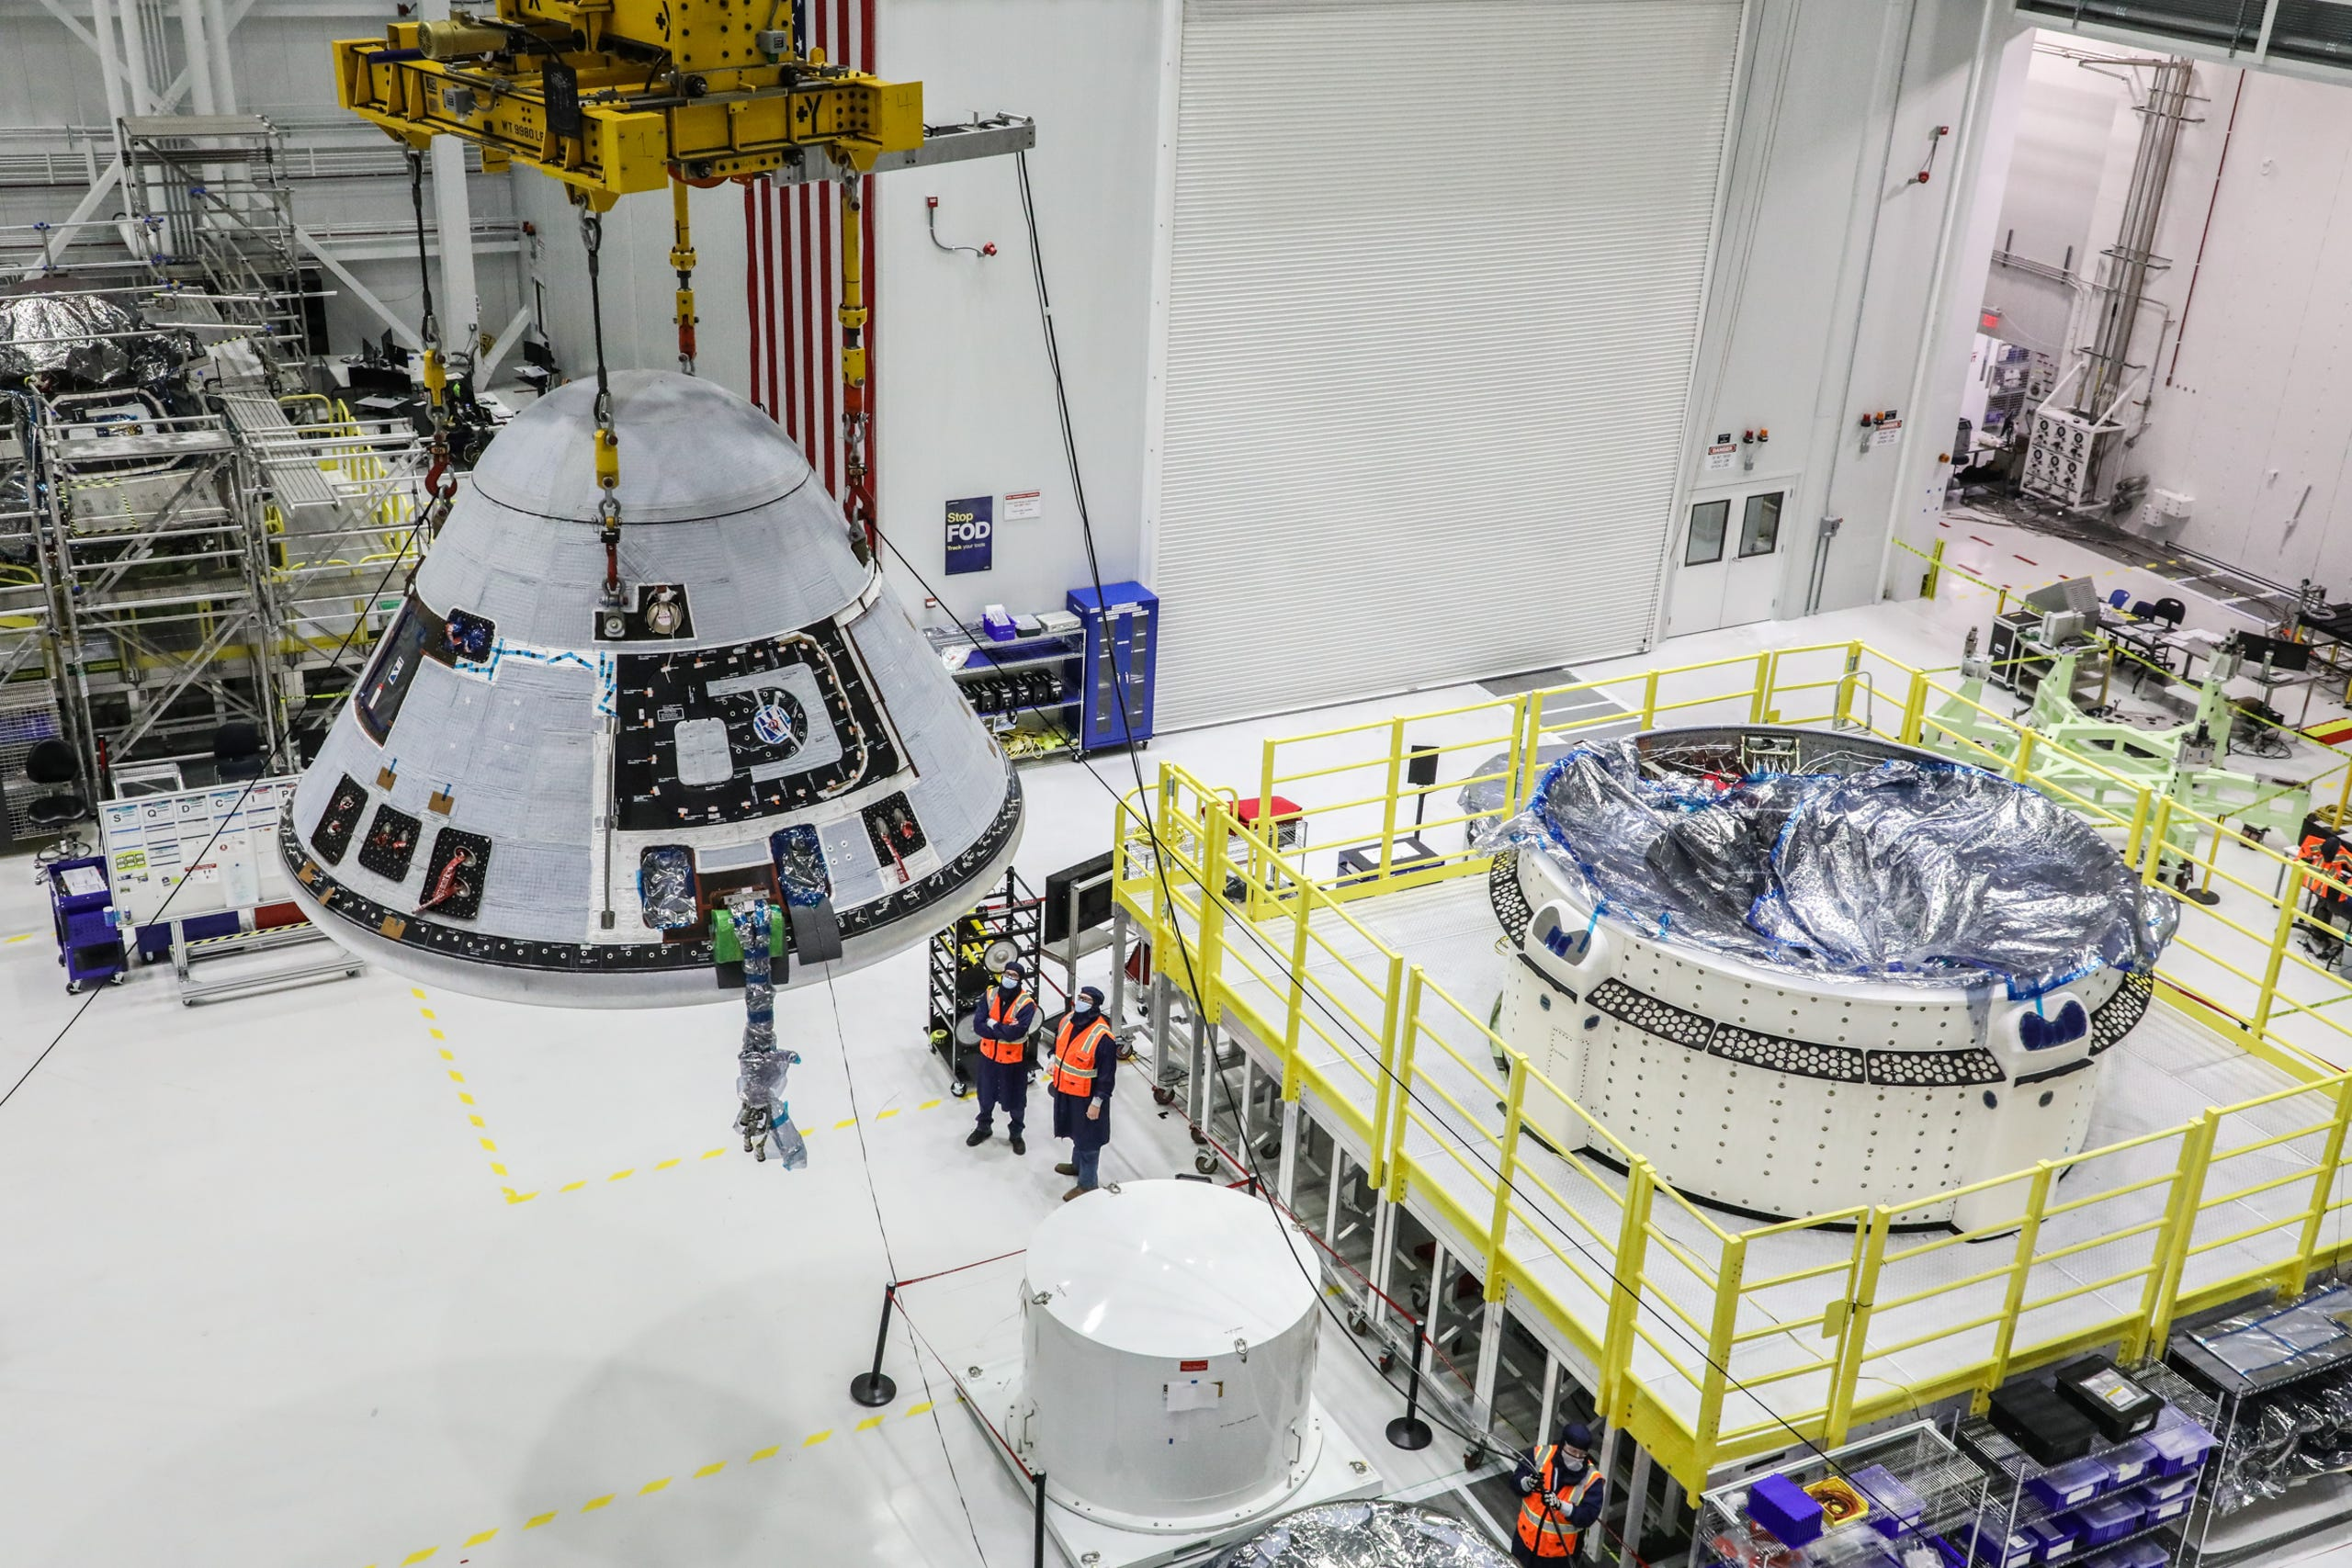 The Orbital Flight Test-2 crew module is lifted and moved in the Starliner production factory at Kennedy Space Center in Florida.